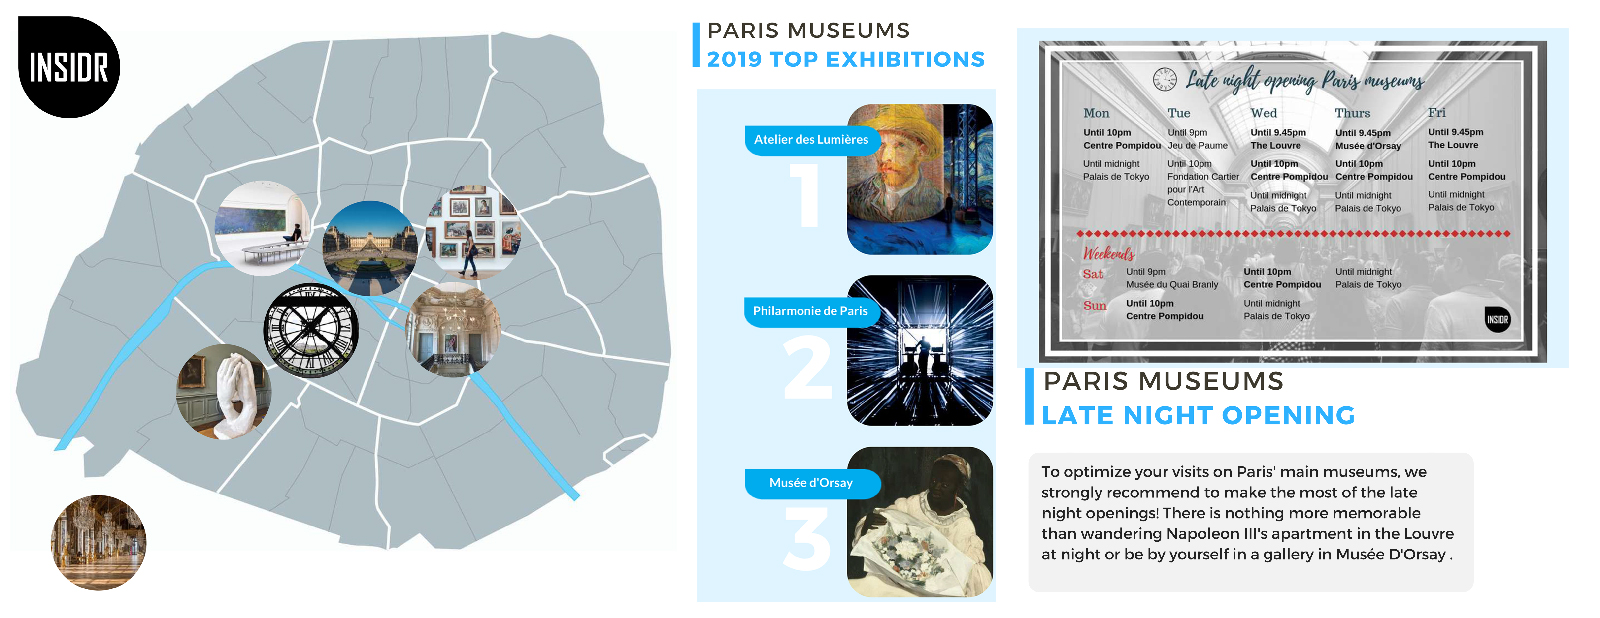 Paris Museums Guide - Top Museums & Best Practical Tips For Your Visit